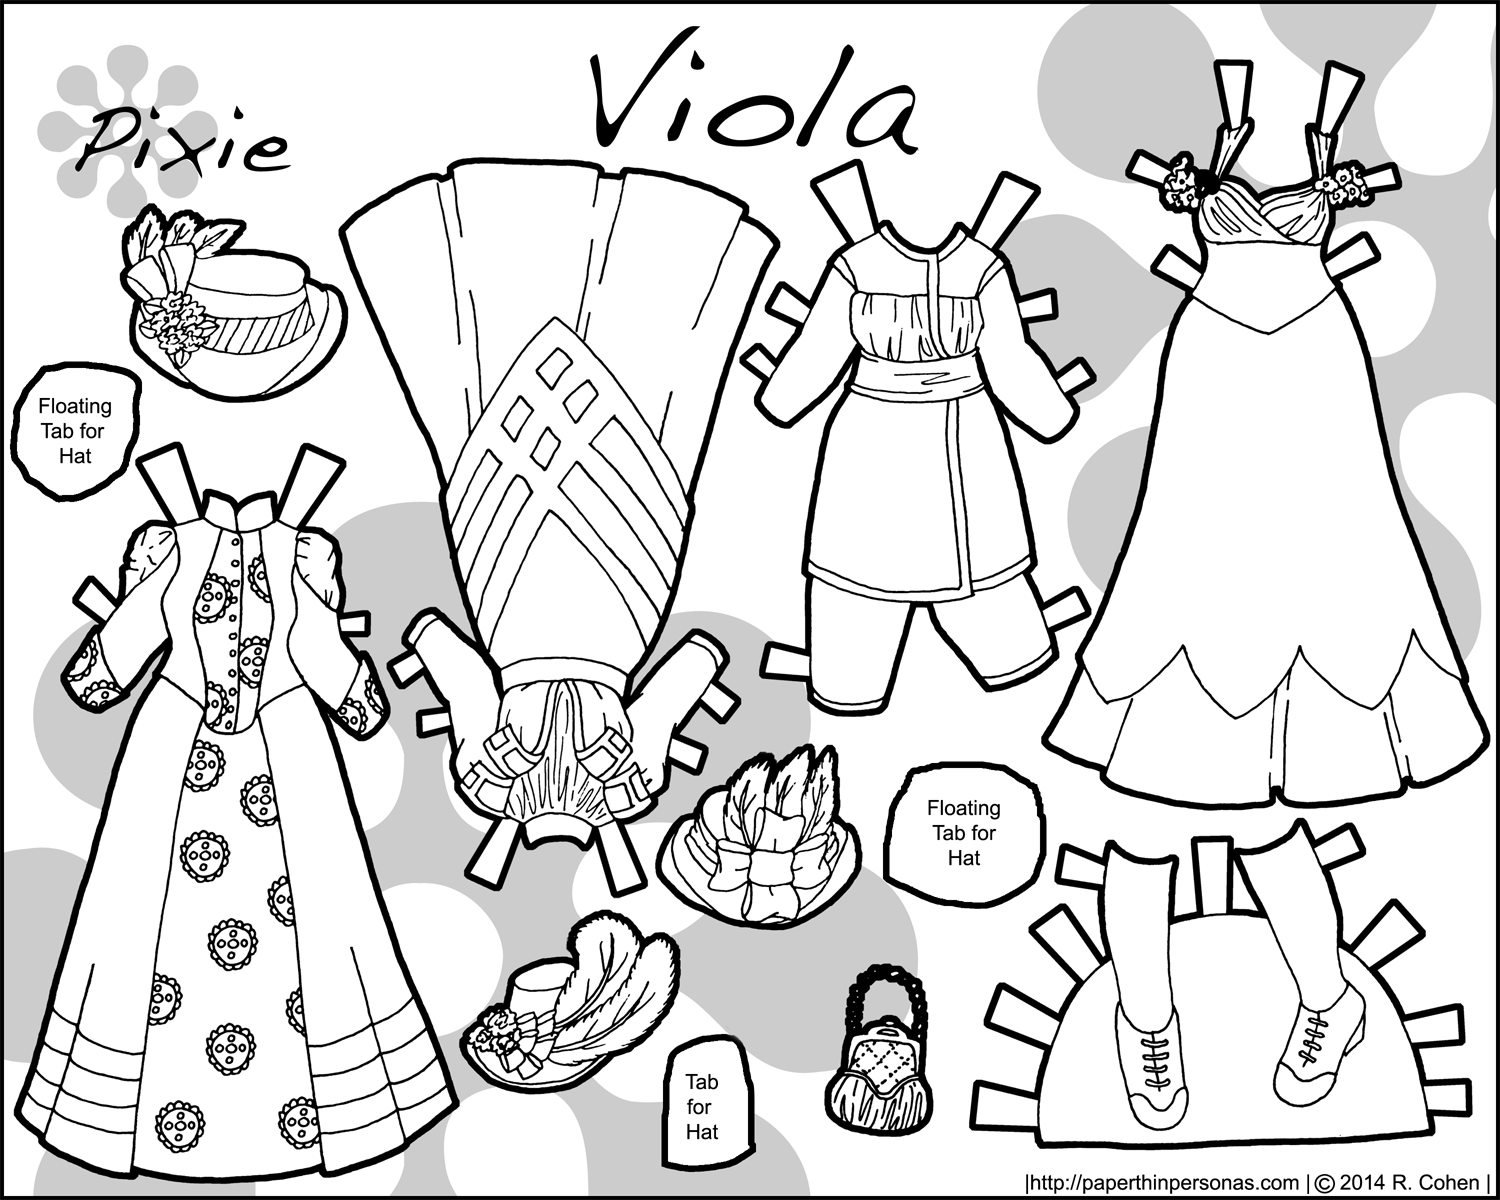 a paper doll to print from the 1890s